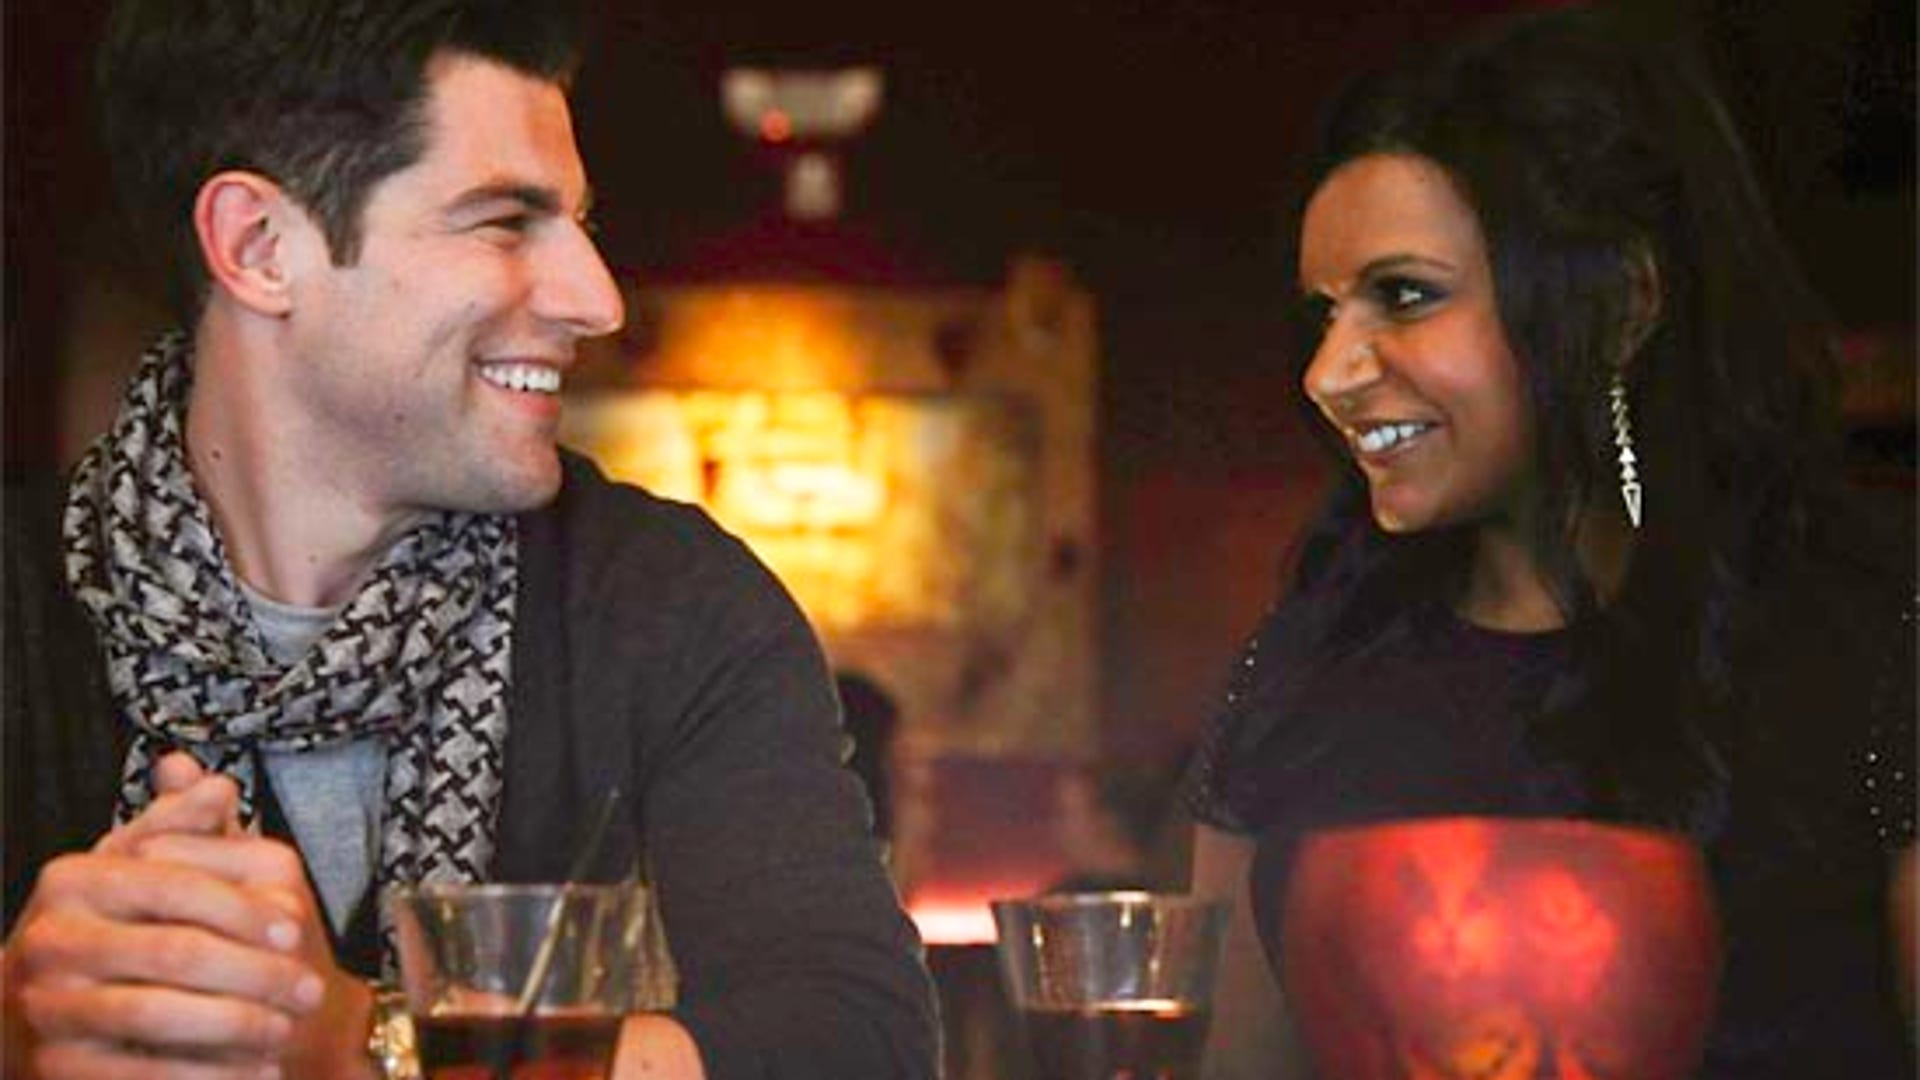 140409-max-greenfield-mindy-project-embed1.jpg